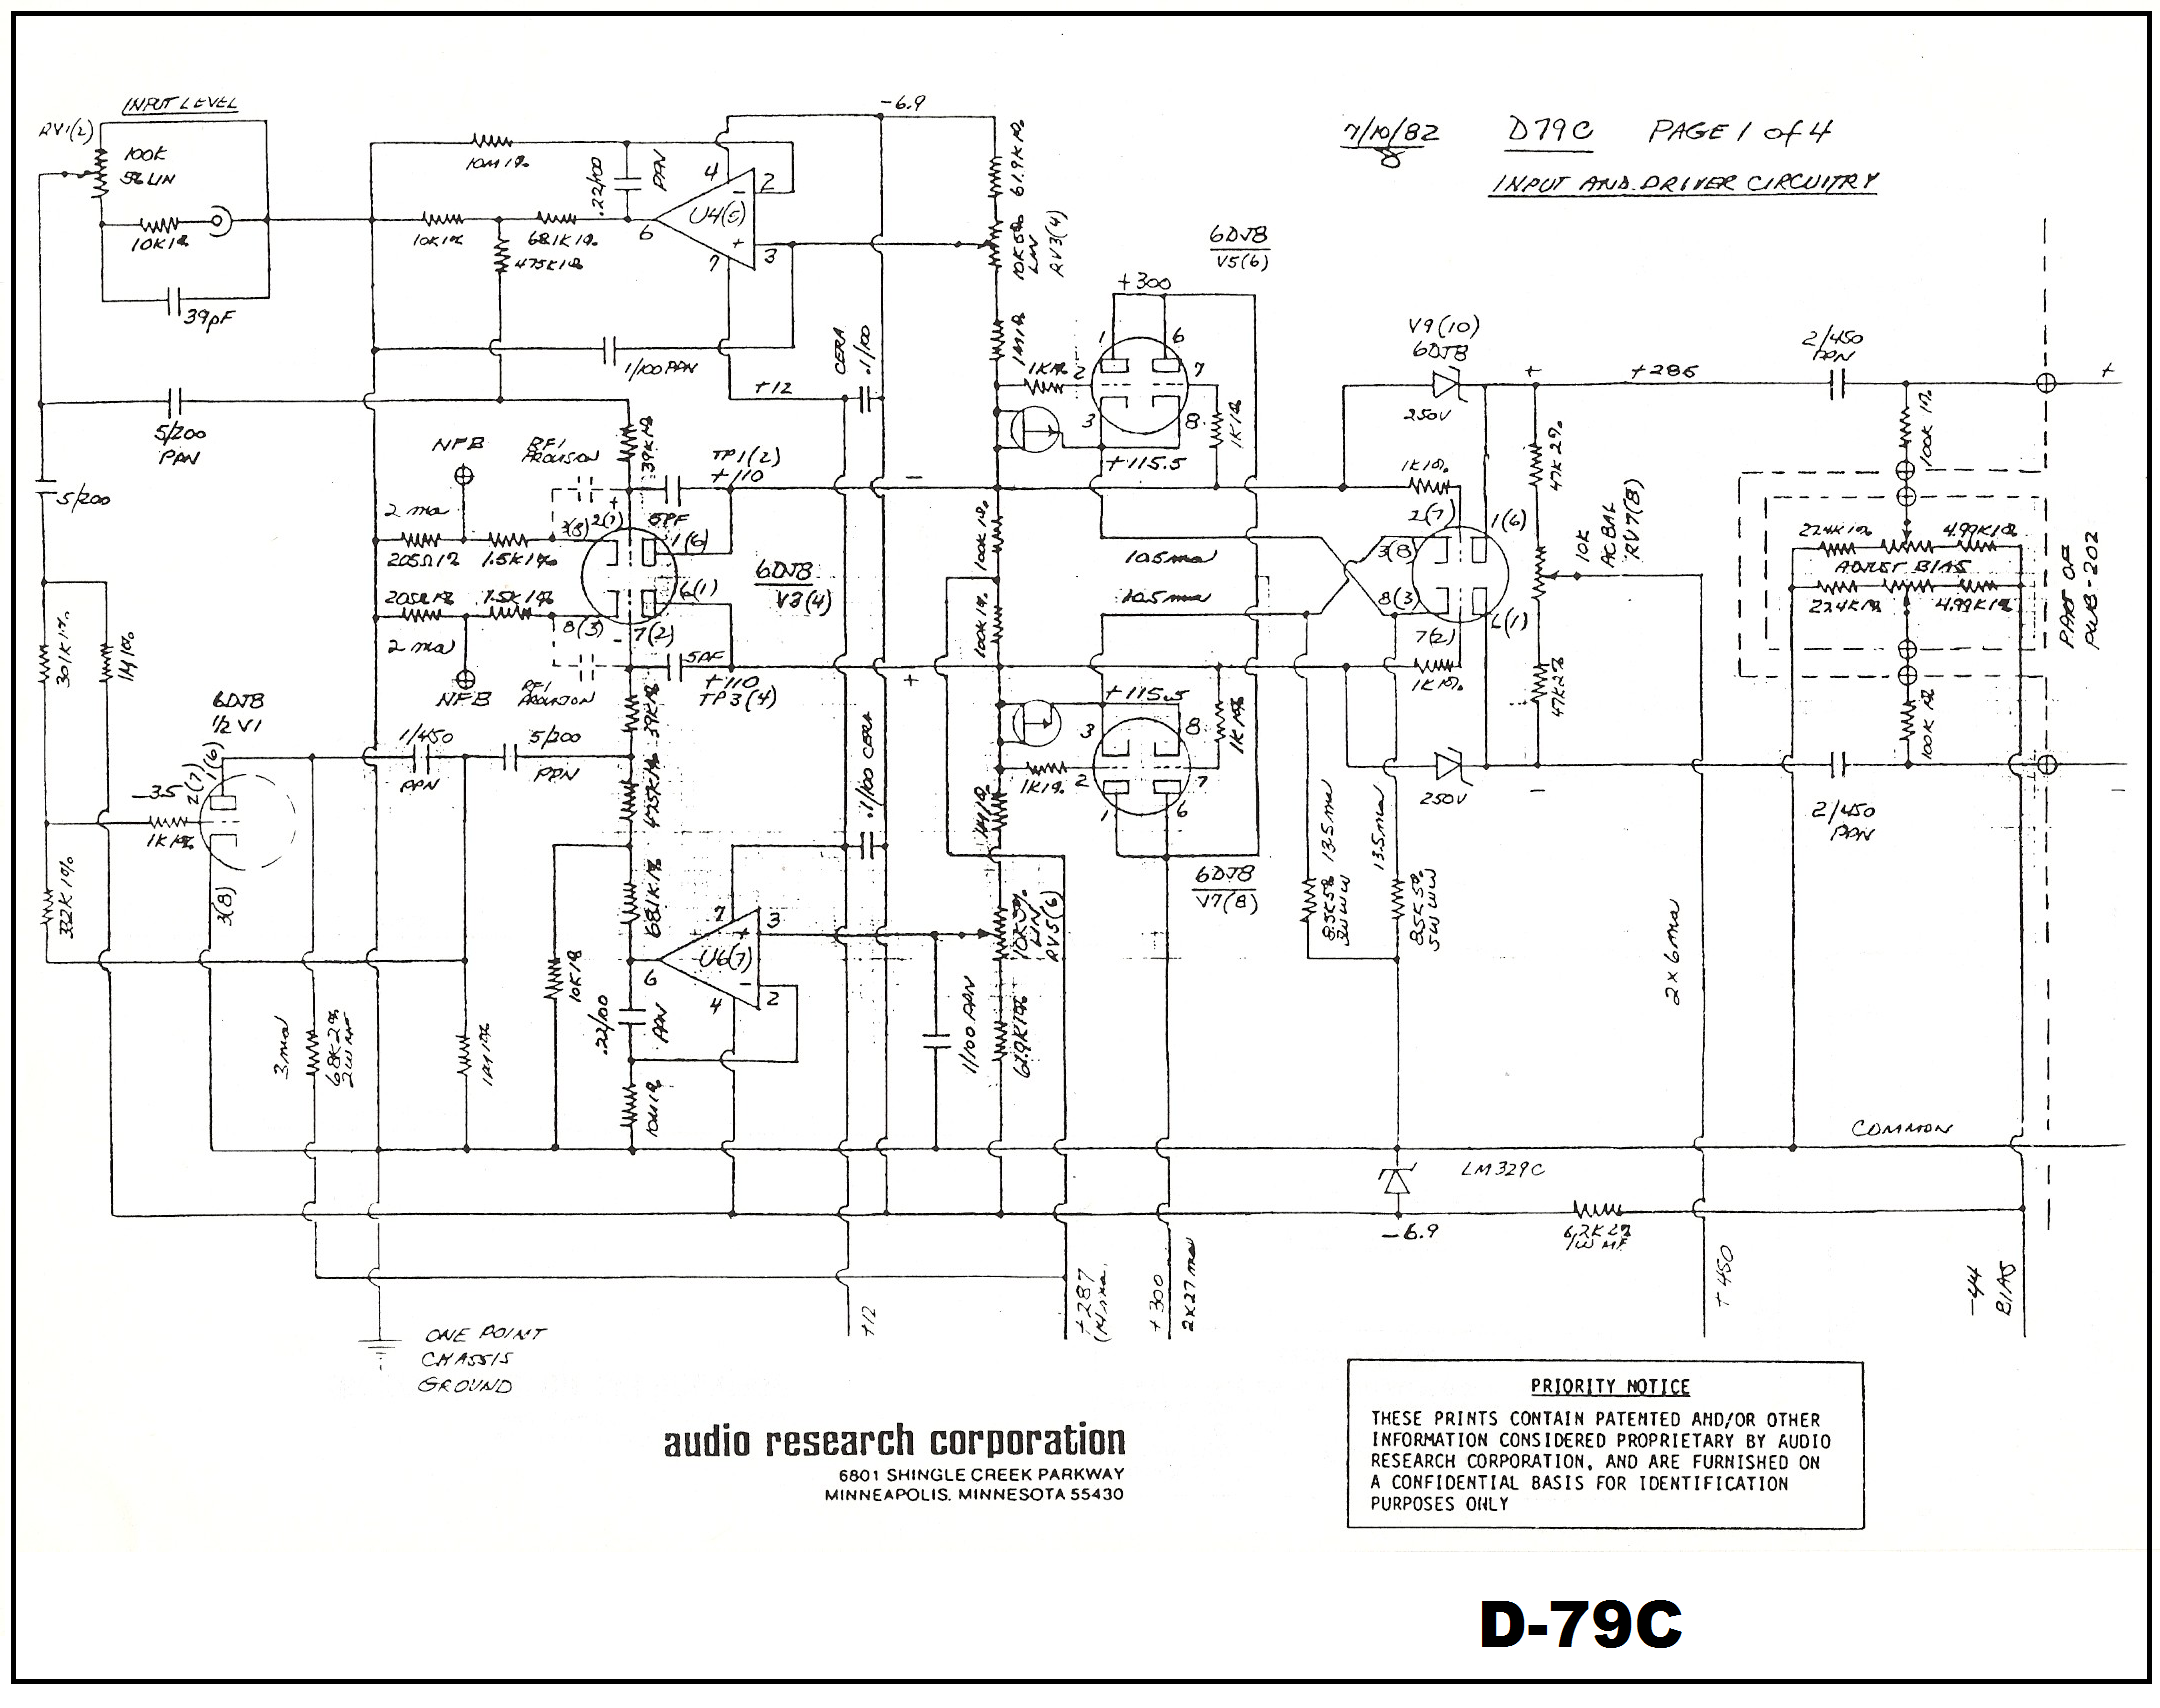 100 Amplifiers Part 4 1959 82 Lilienthal Engineering Class A Audio Amplifier Circuit Research D 79c